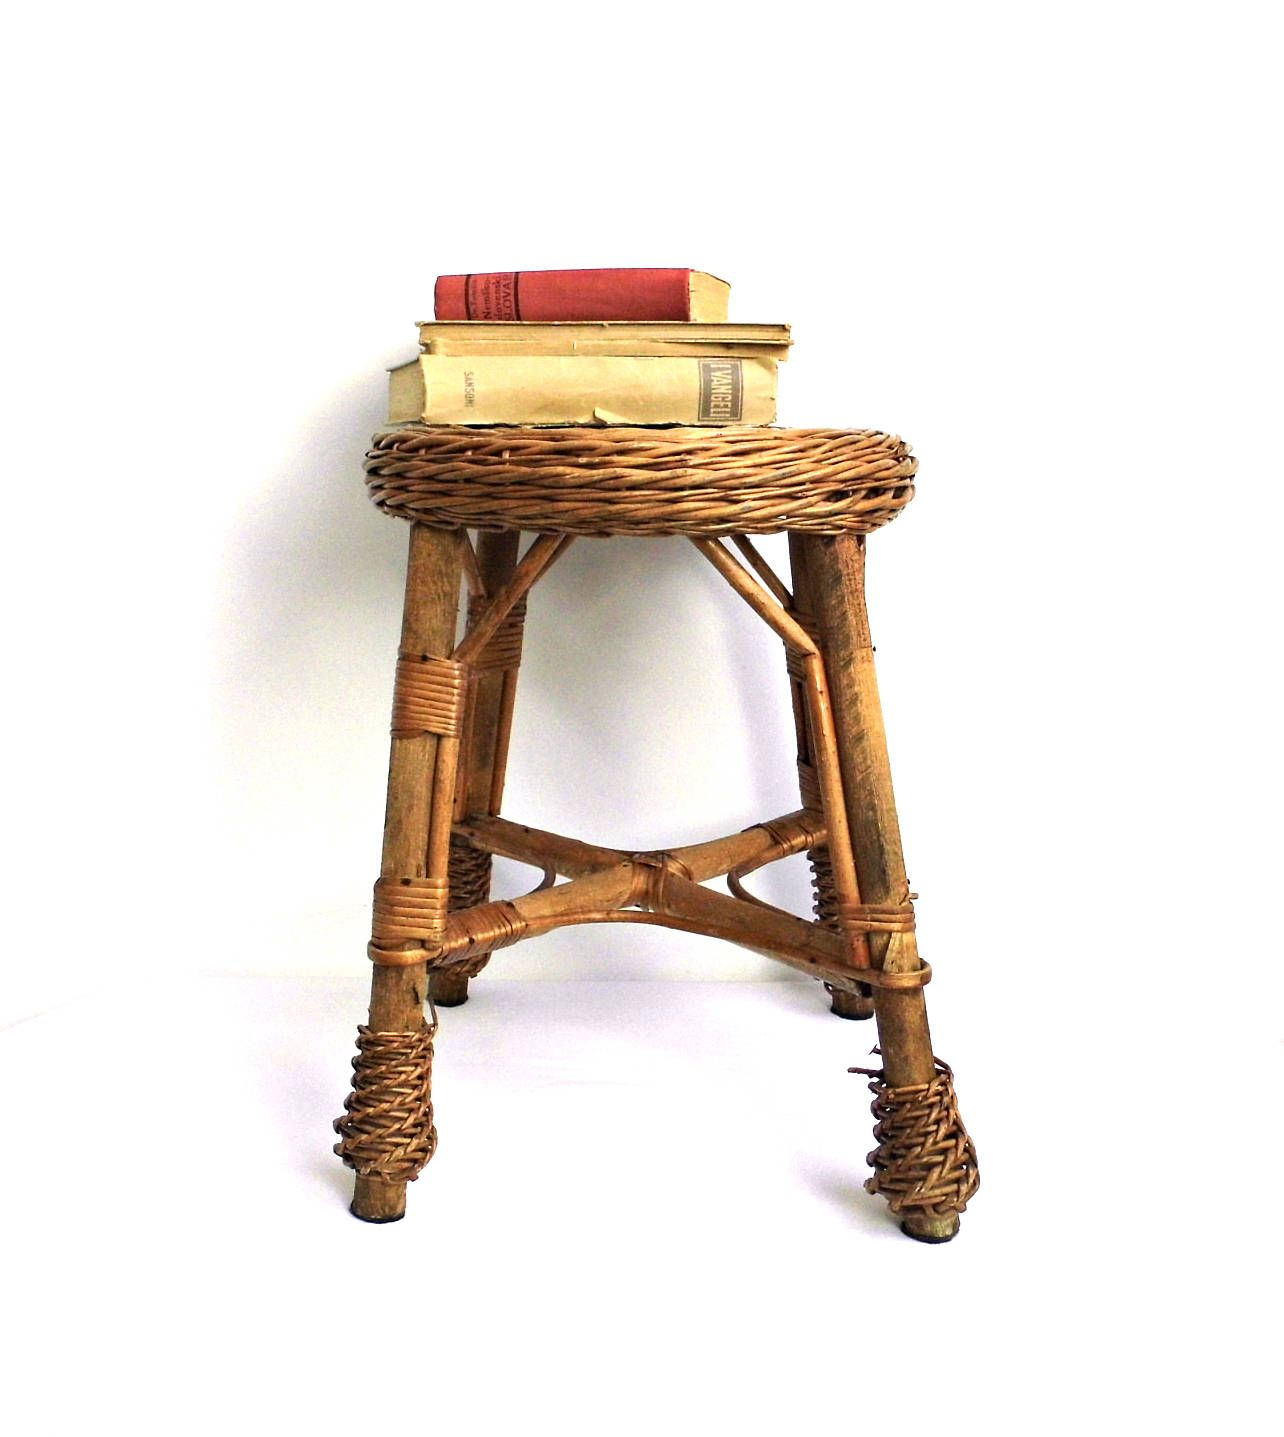 Vintage Wood Bamboo Coffee Table Rattan Small Ottoman Foot Stool Round End  Side Table Nightstand Wicker